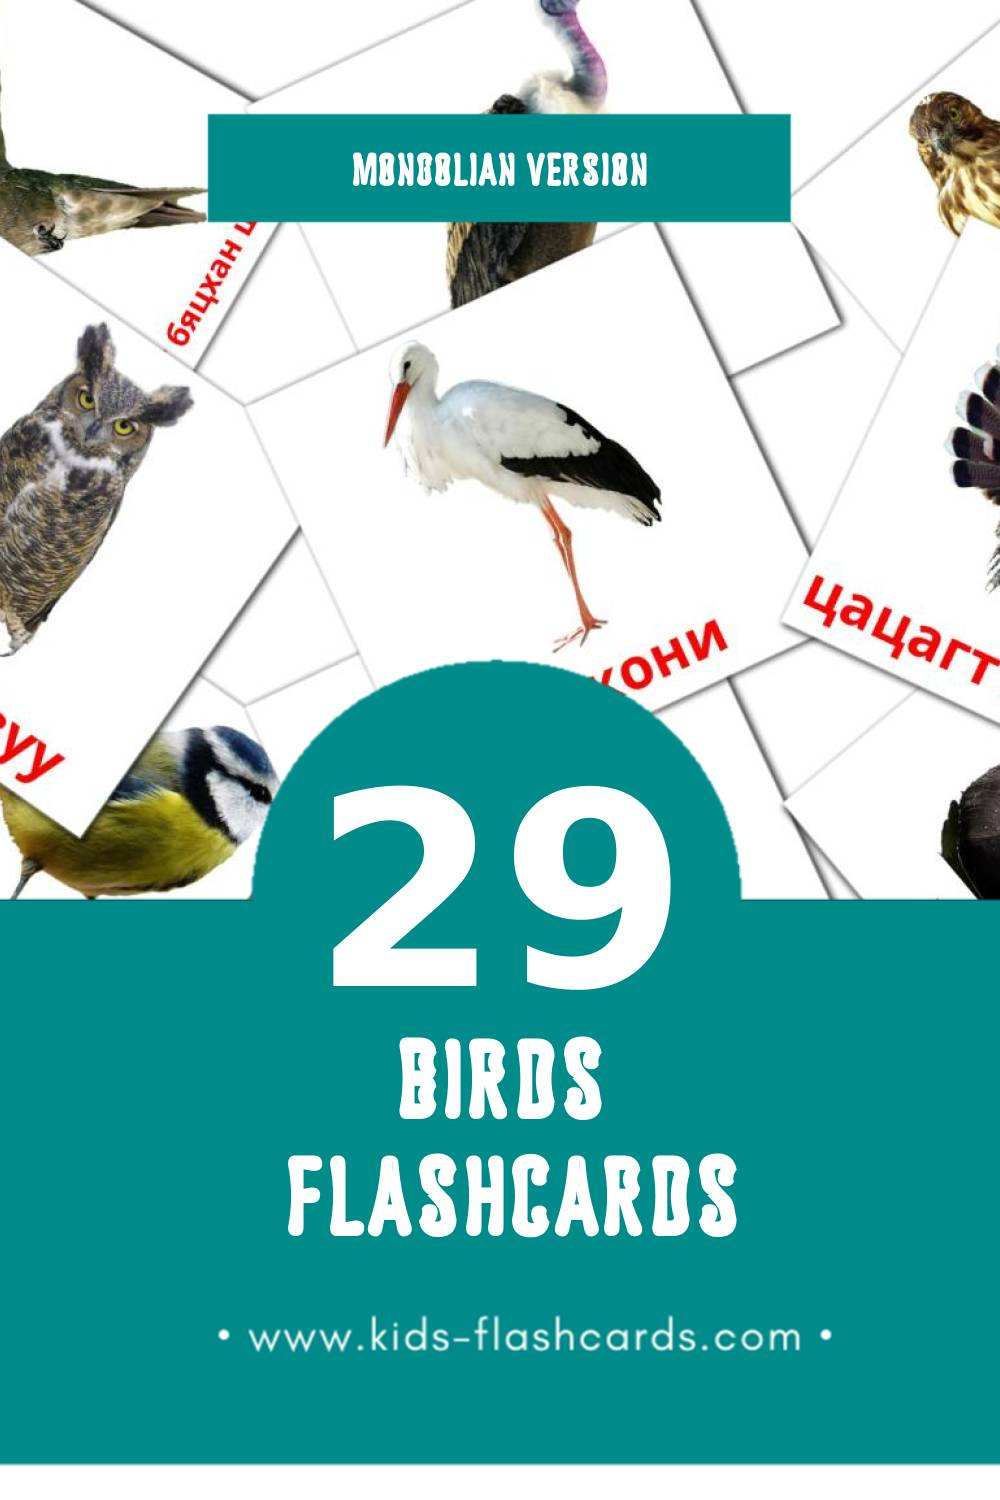 Visual Шувууд Flashcards for Toddlers (29 cards in Mongolian)